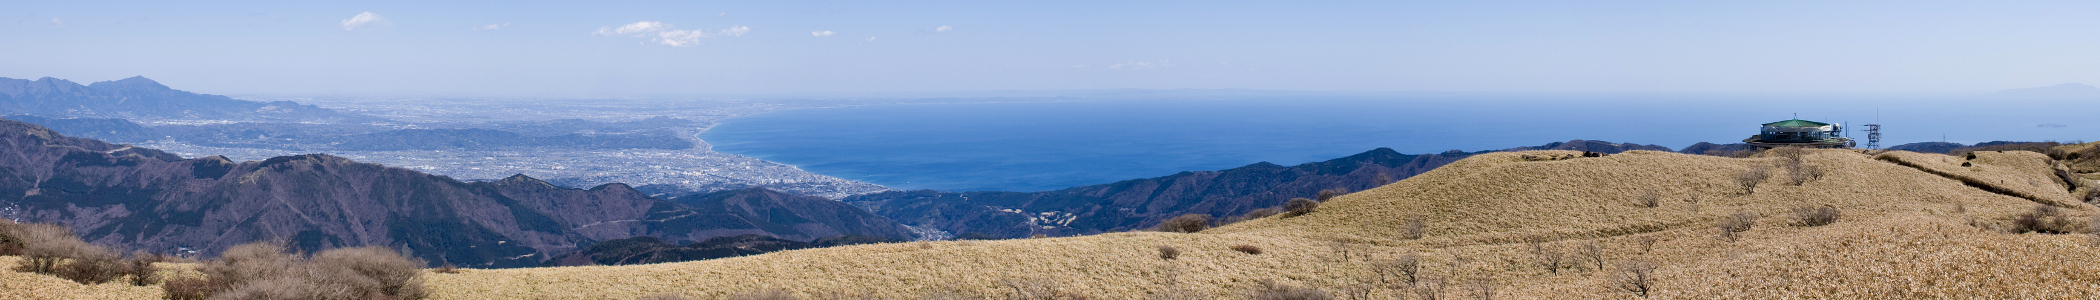 Sagami Bay as seen from Mt.Komagatake